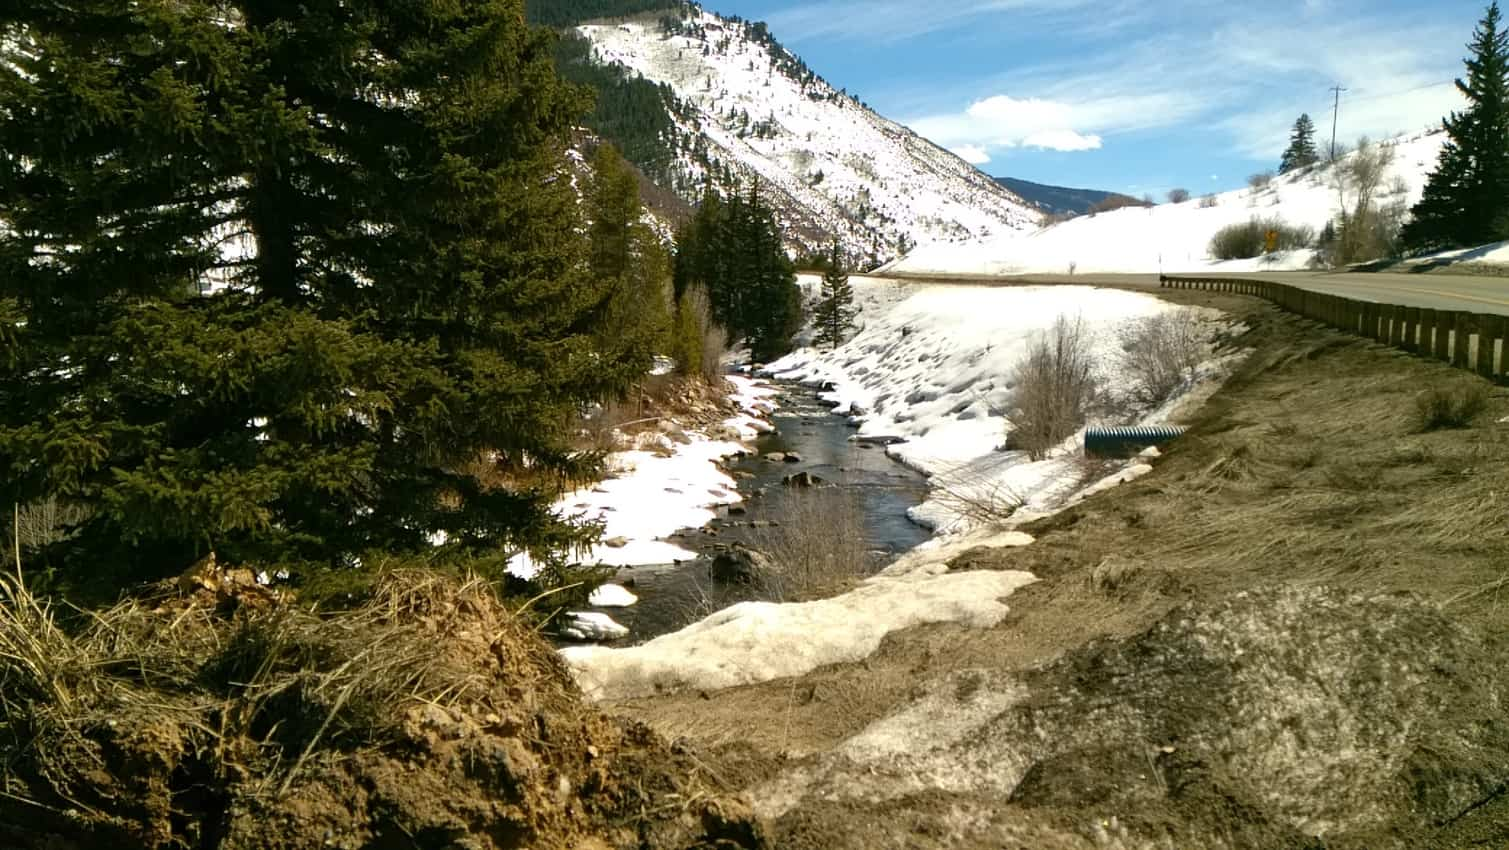 Trout stream in White River National Forest near Grand Junction, CO